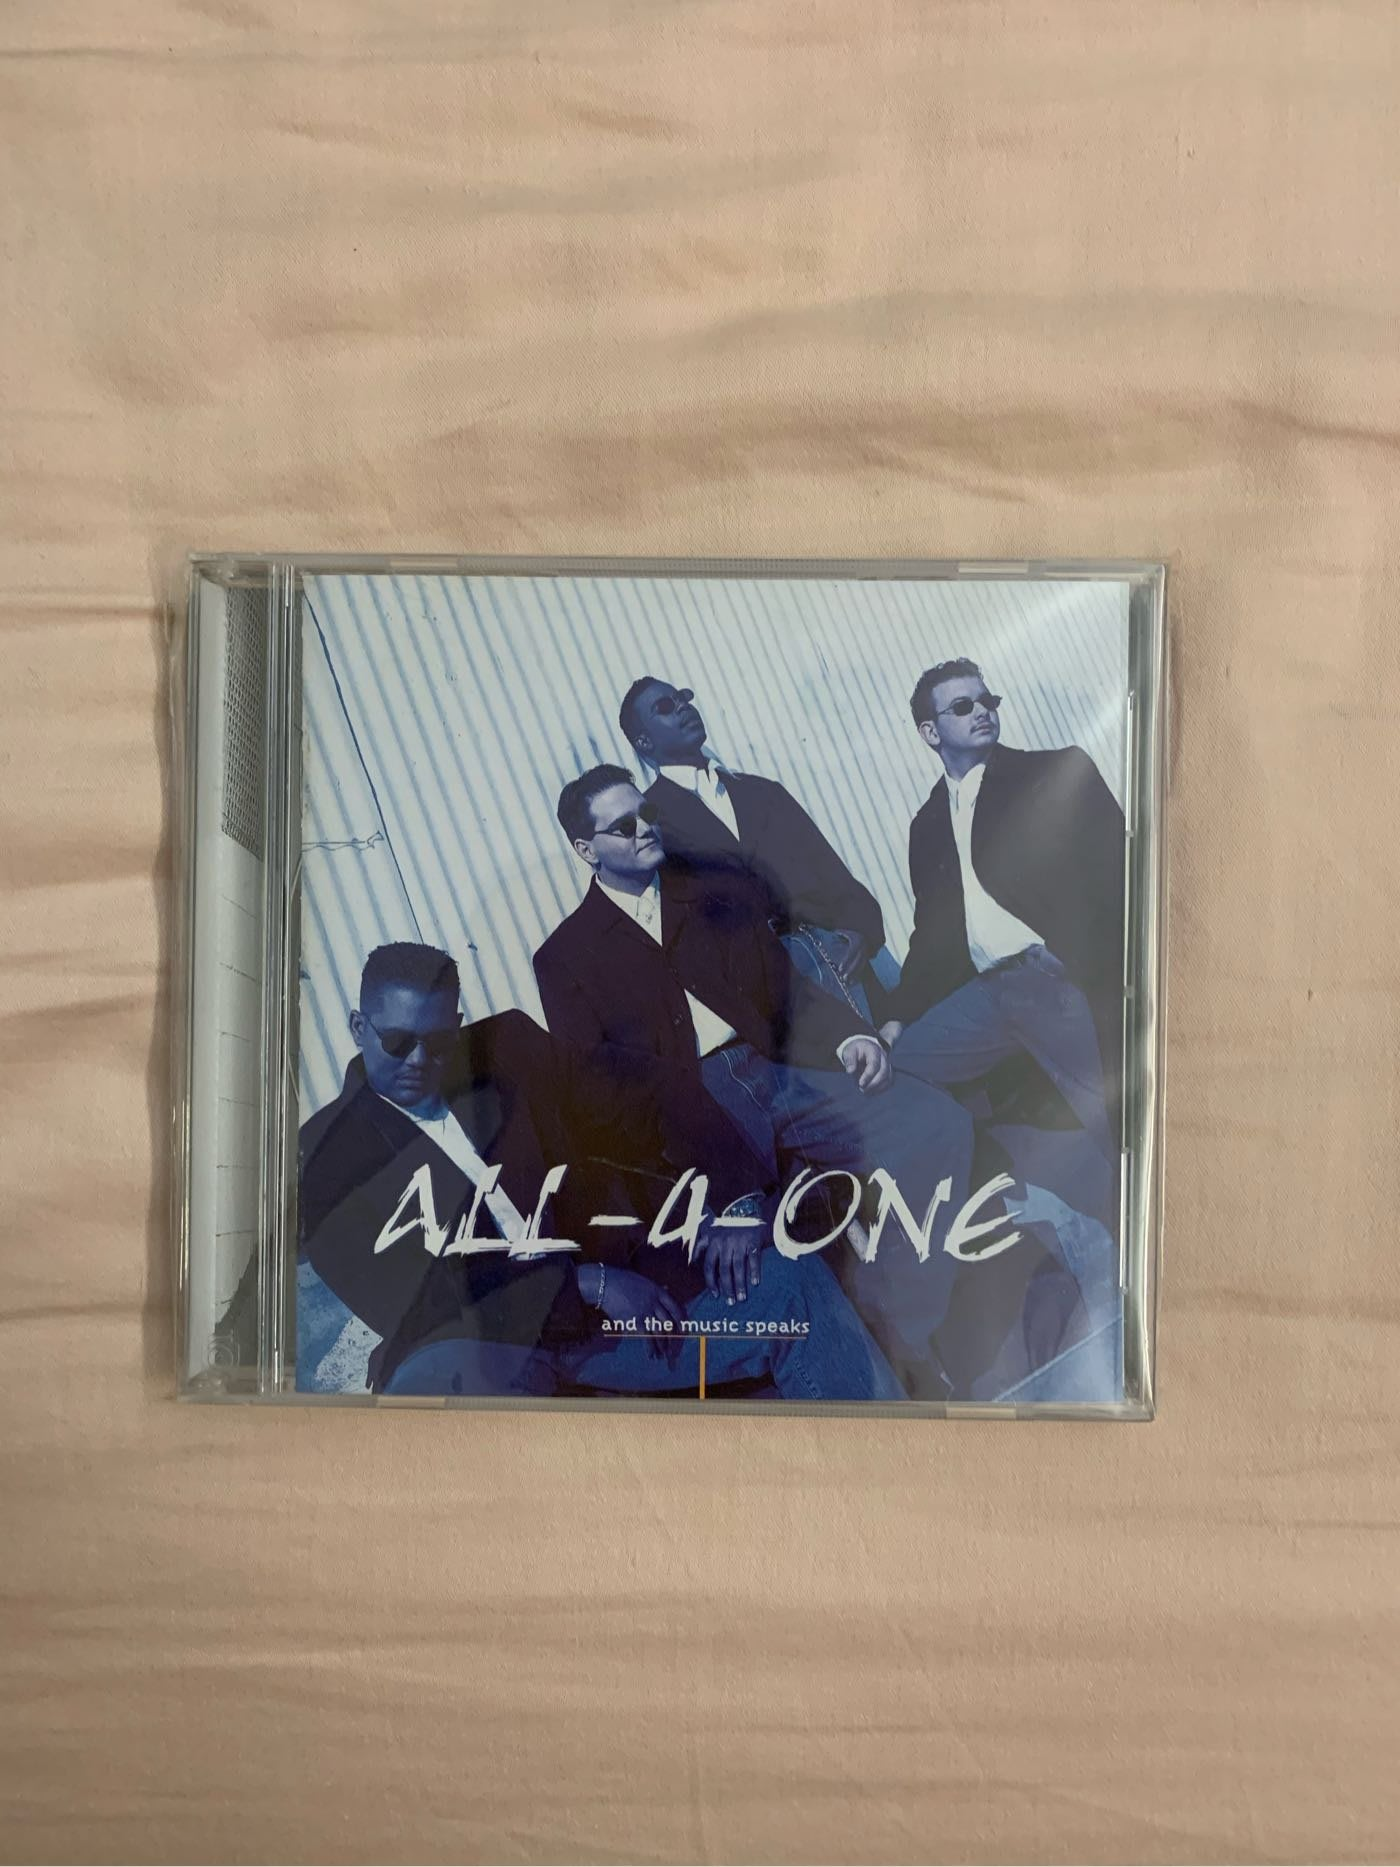 ALL 4 ONE / AND THE MUSIC SPEAKS